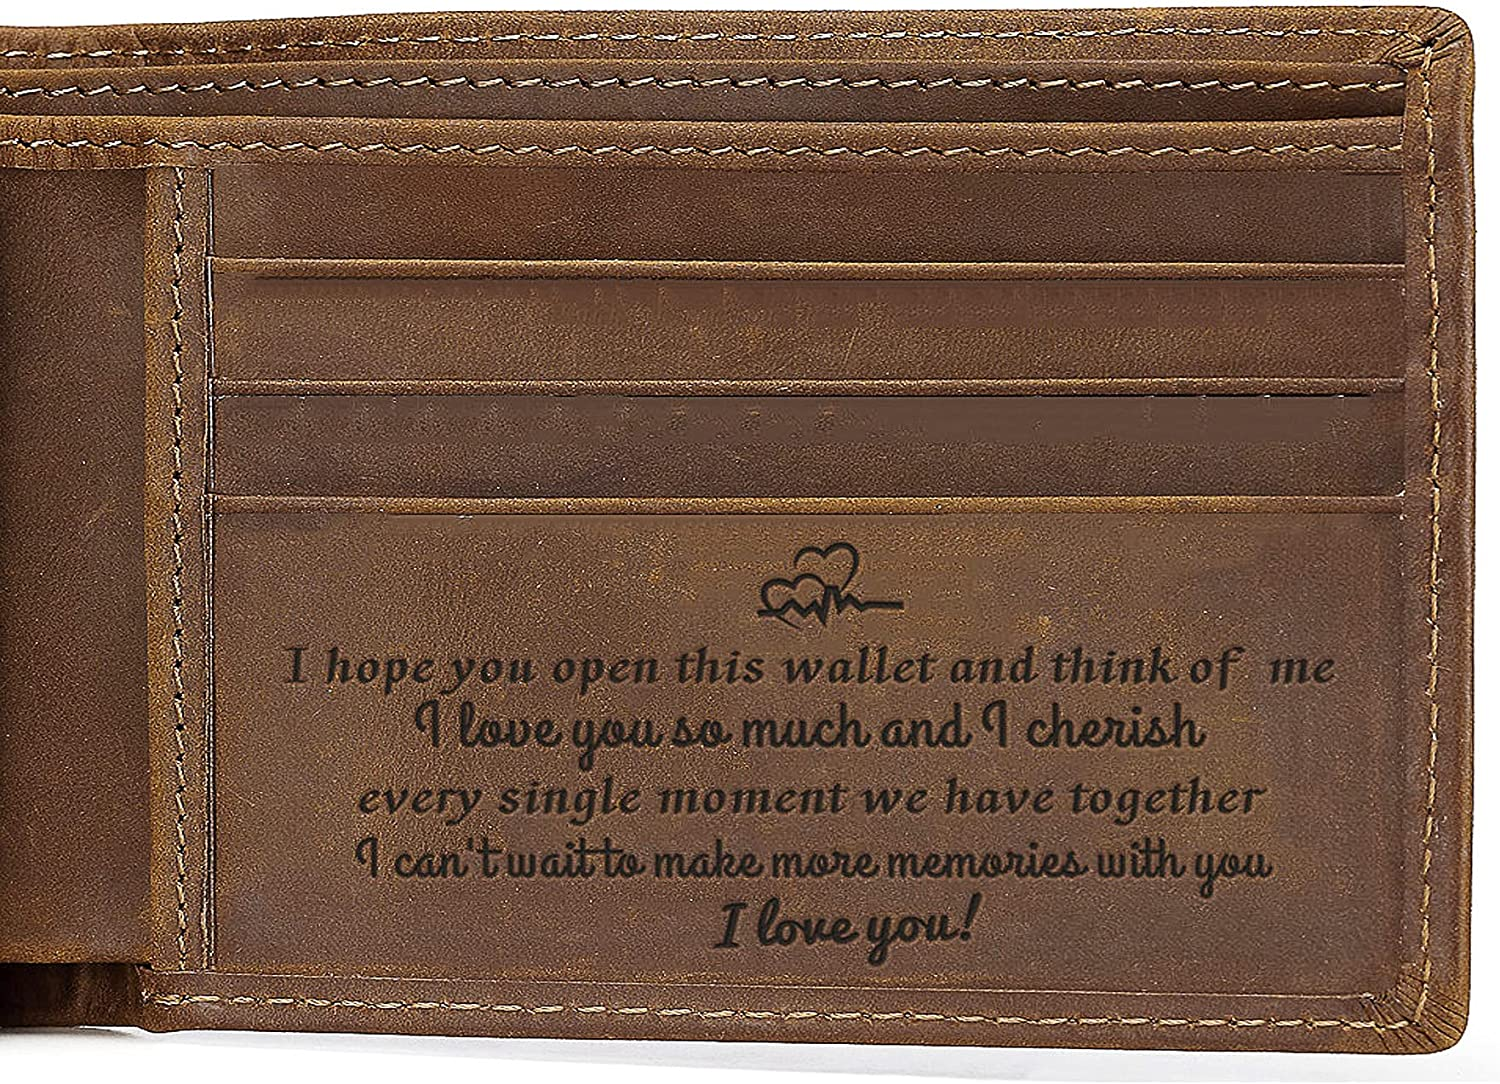 Personalized Genuine Leather Wallet for Husband Boyfriend Fiance, Engraved Trifold Wallet with Love Message, Birthday Fathers Day Valentines Christmas, Engraved Custom Gifts